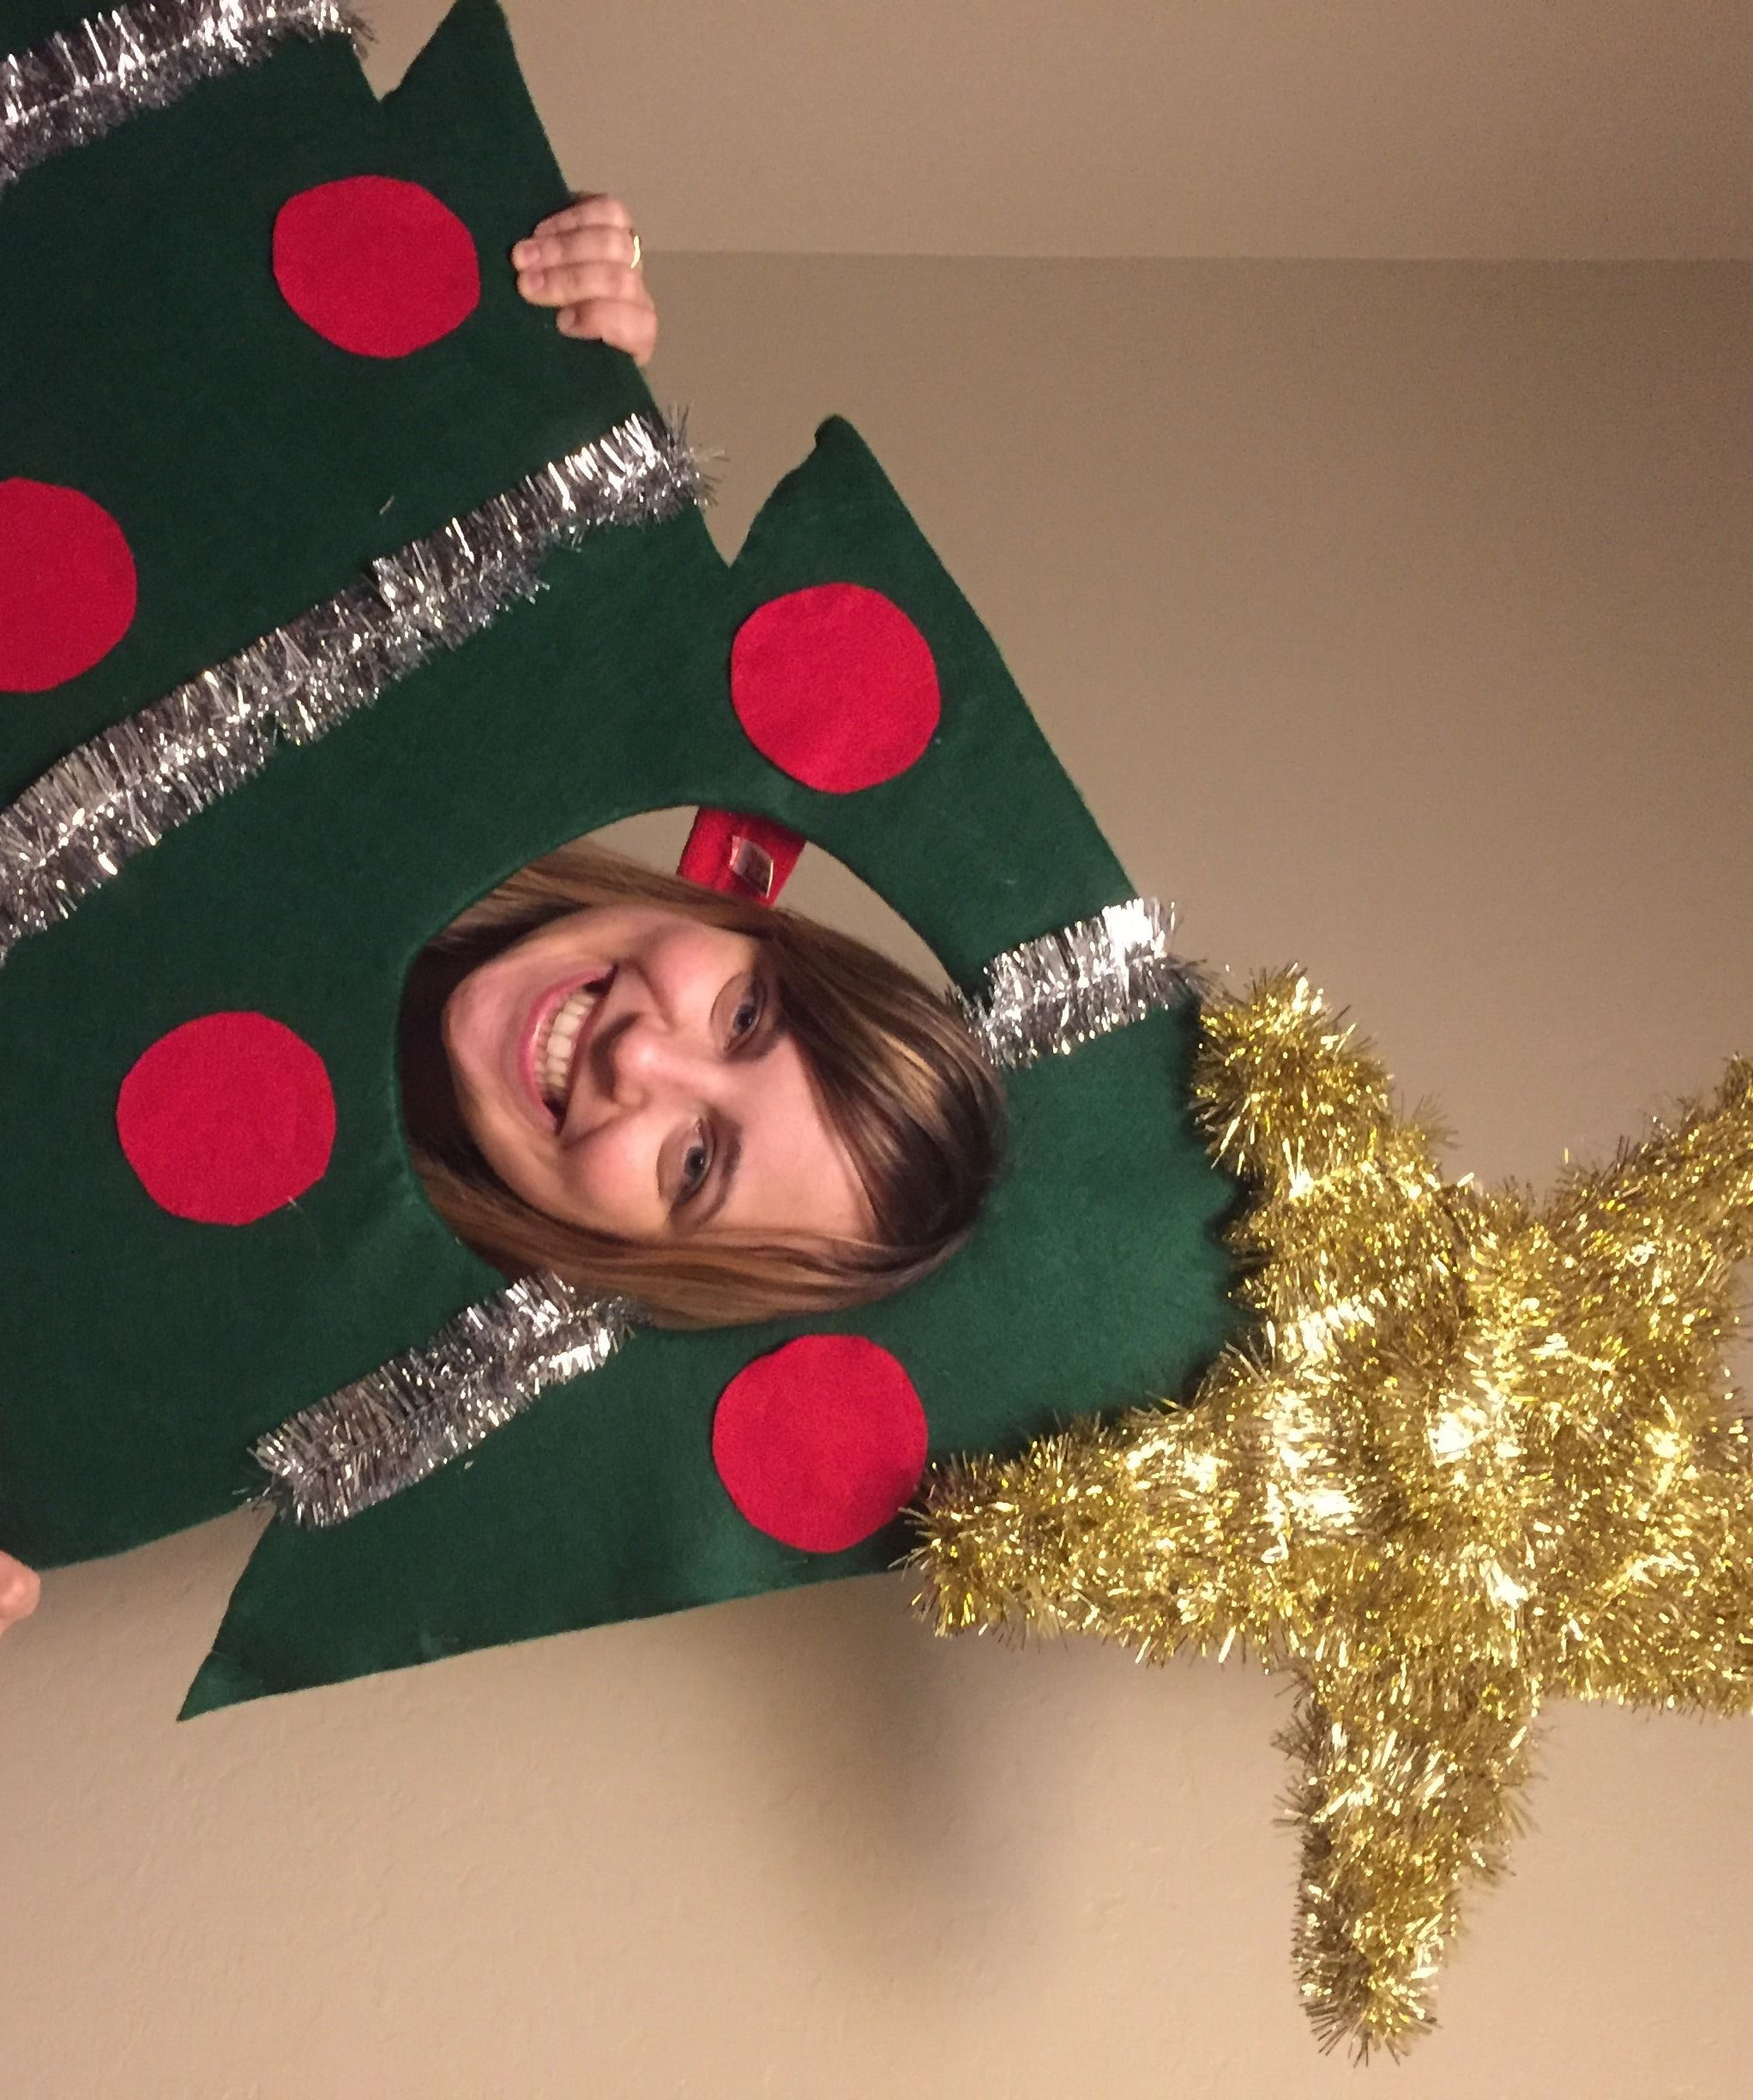 a954e6c7a78 Christmas Tree – Face in Hole Photo Prop   Standin  9 Steps (with Pictures)